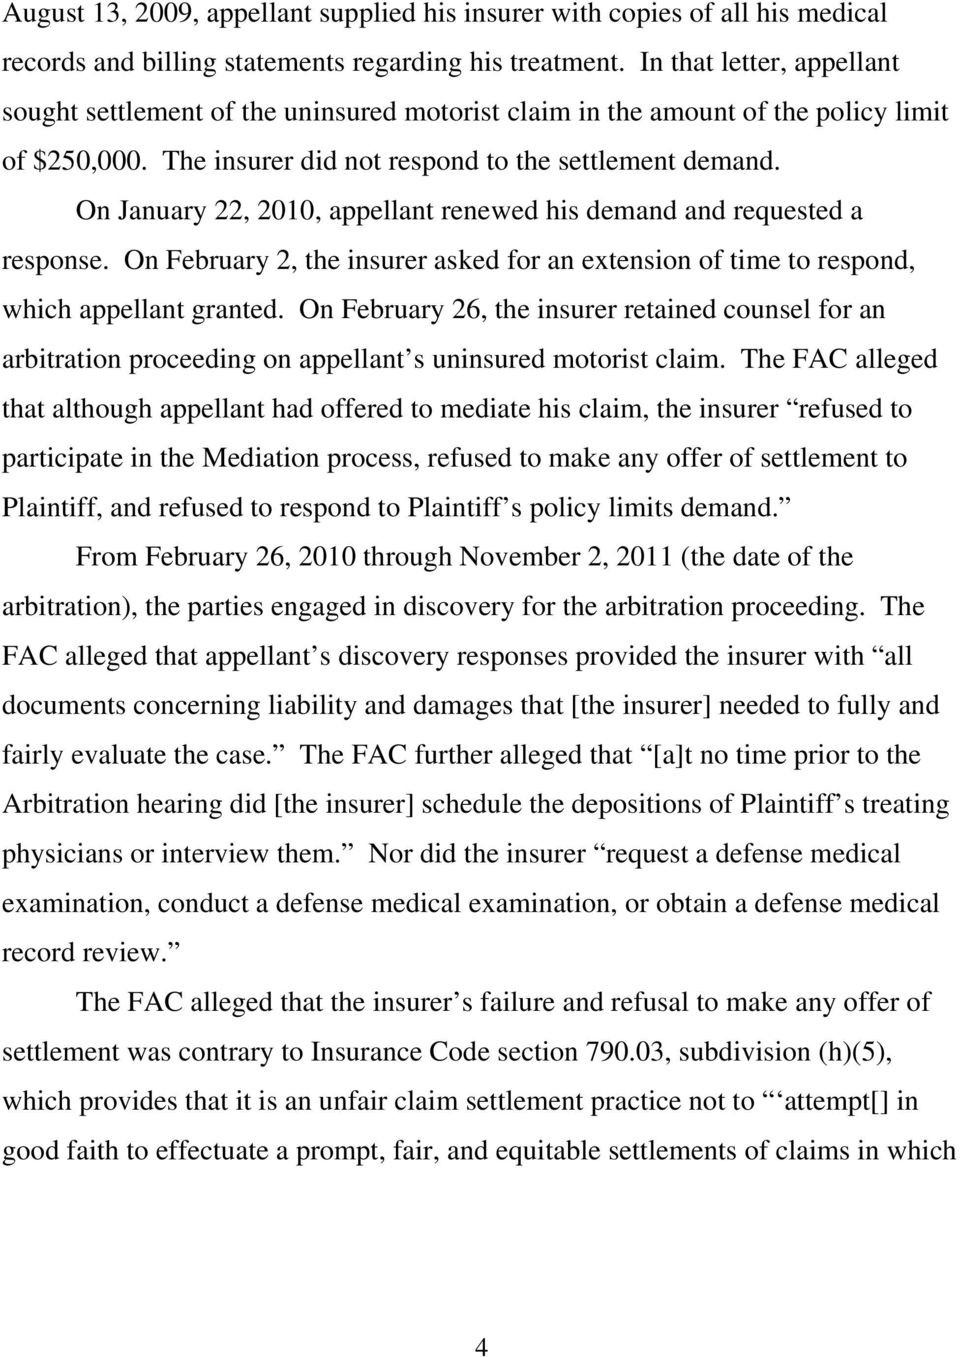 On January 22, 2010, appellant renewed his demand and requested a response. On February 2, the insurer asked for an extension of time to respond, which appellant granted.